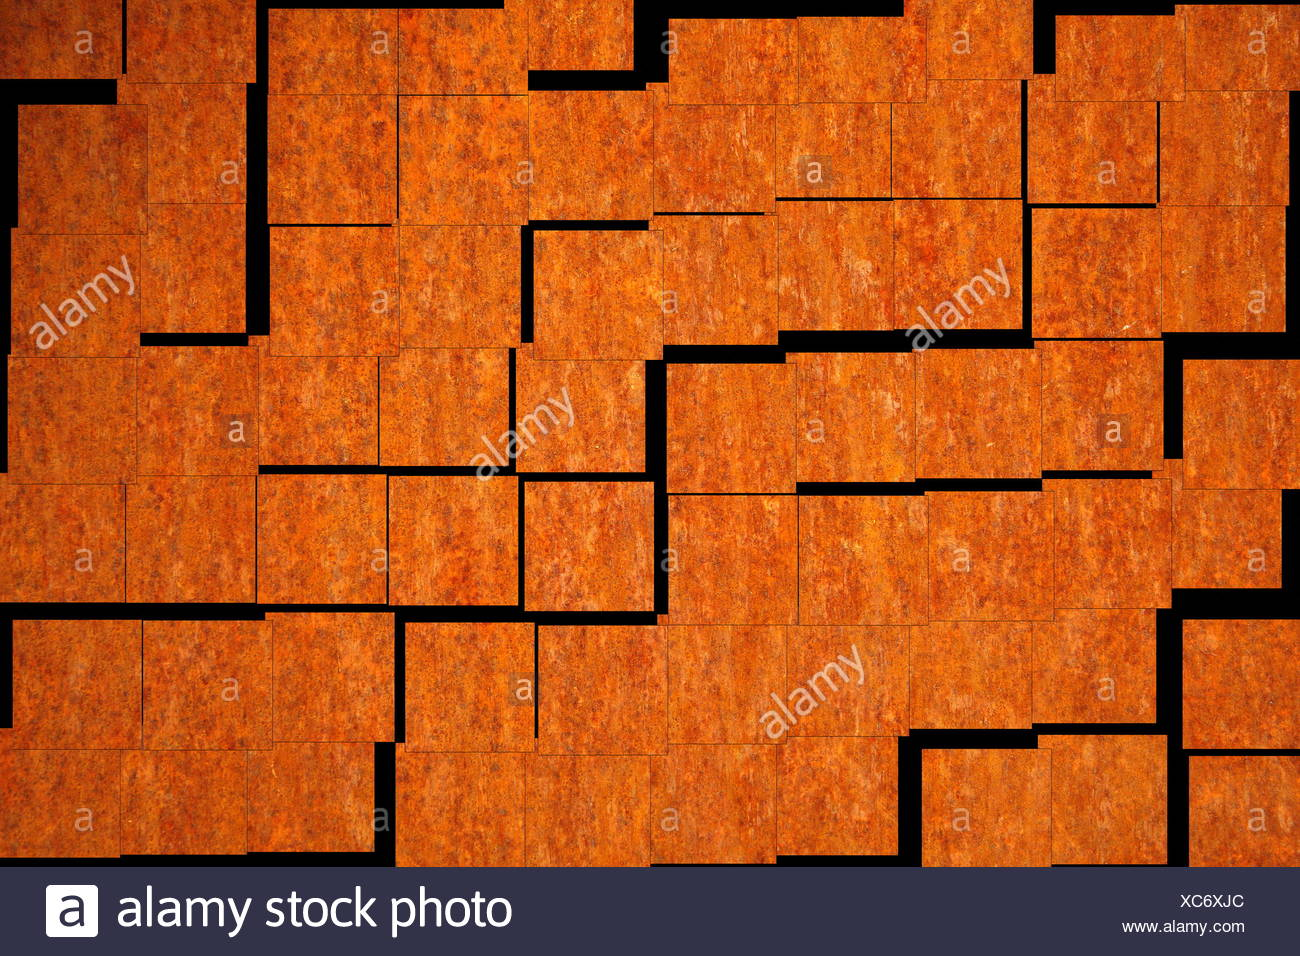 mosaic in the design of a rusty sheet - Stock Image